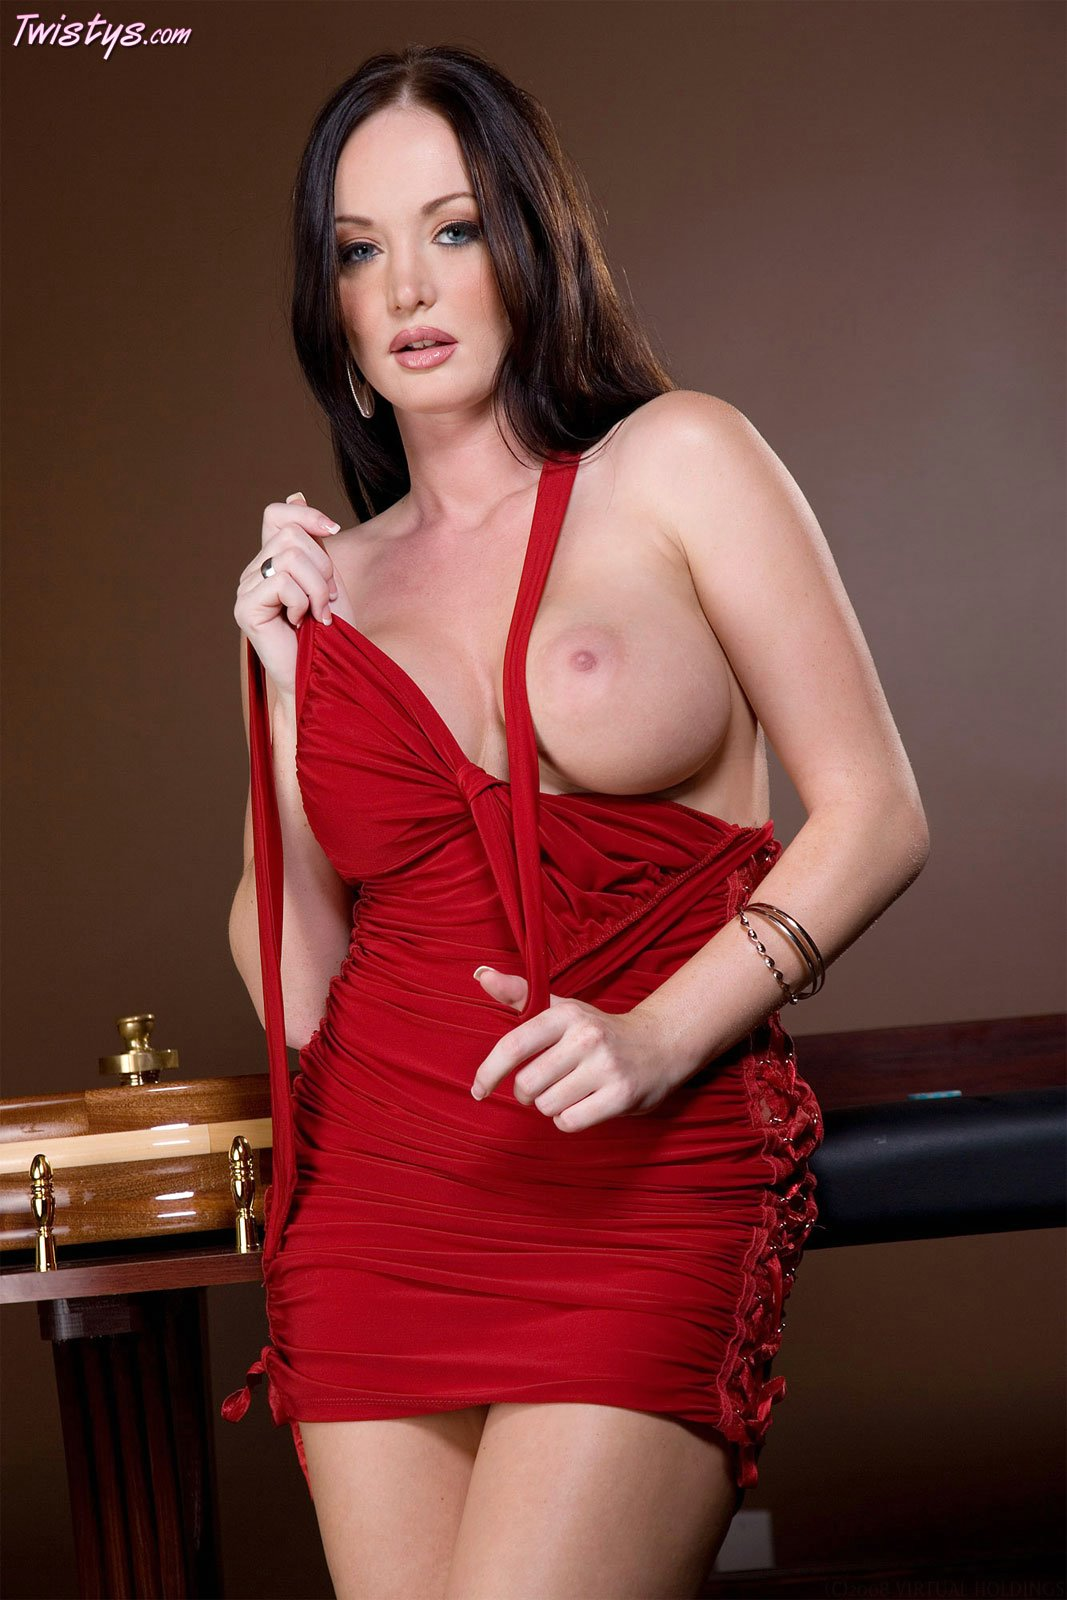 Melissa Lauren in sexy red dress stripping and posing ...